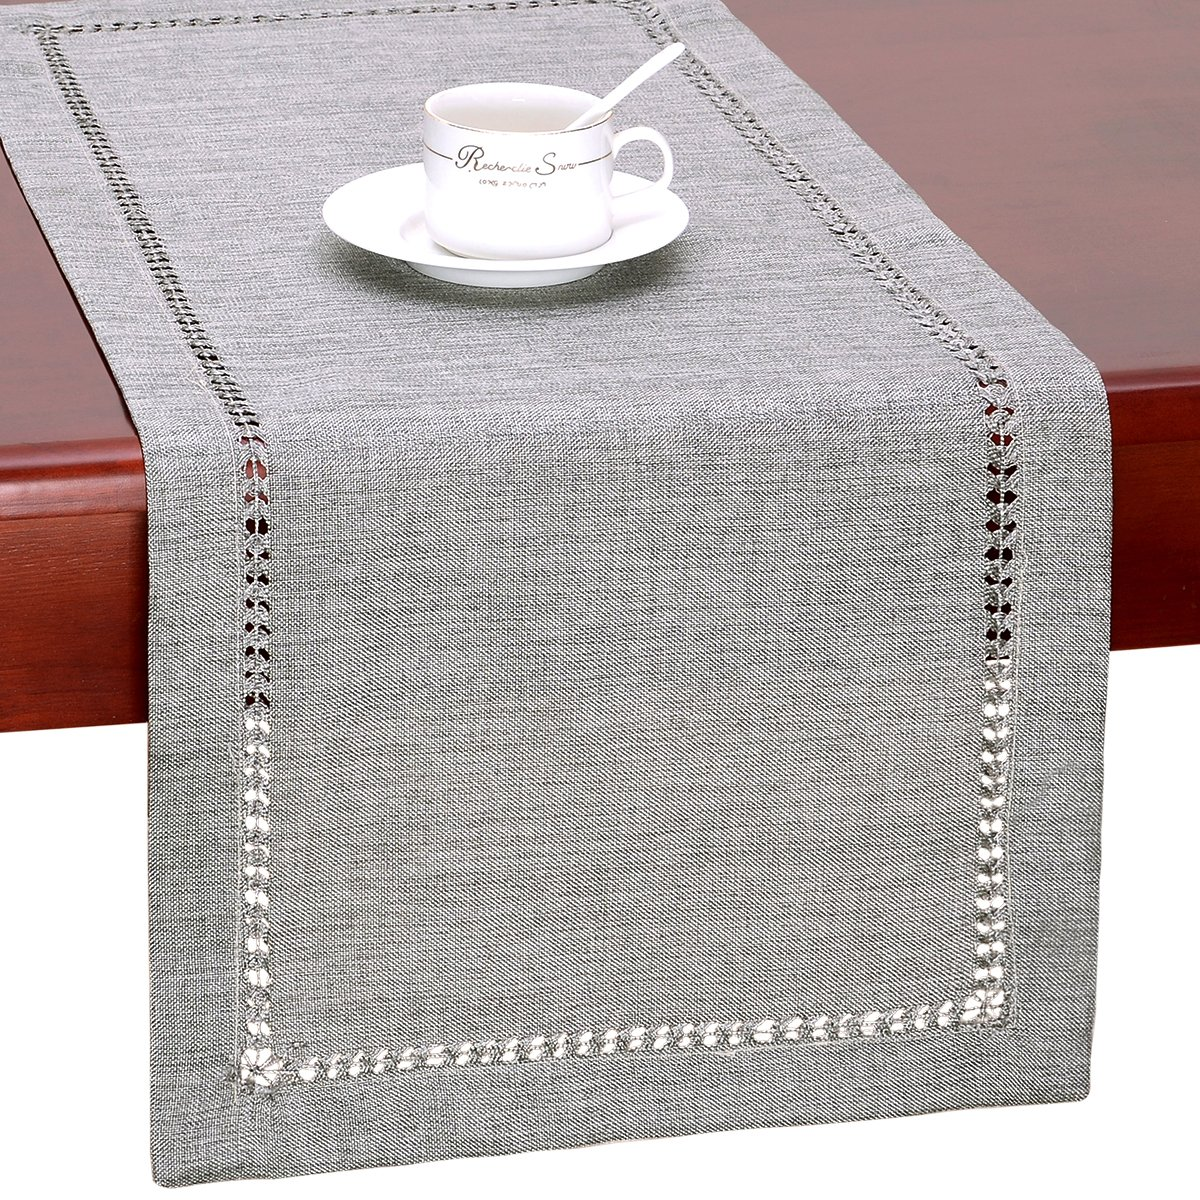 GRELUCGO Set of 4 Decorative Handmade Hemstitch Gray Dining Table Placemats, Rectangular 12 by 18 Inch Baishuo